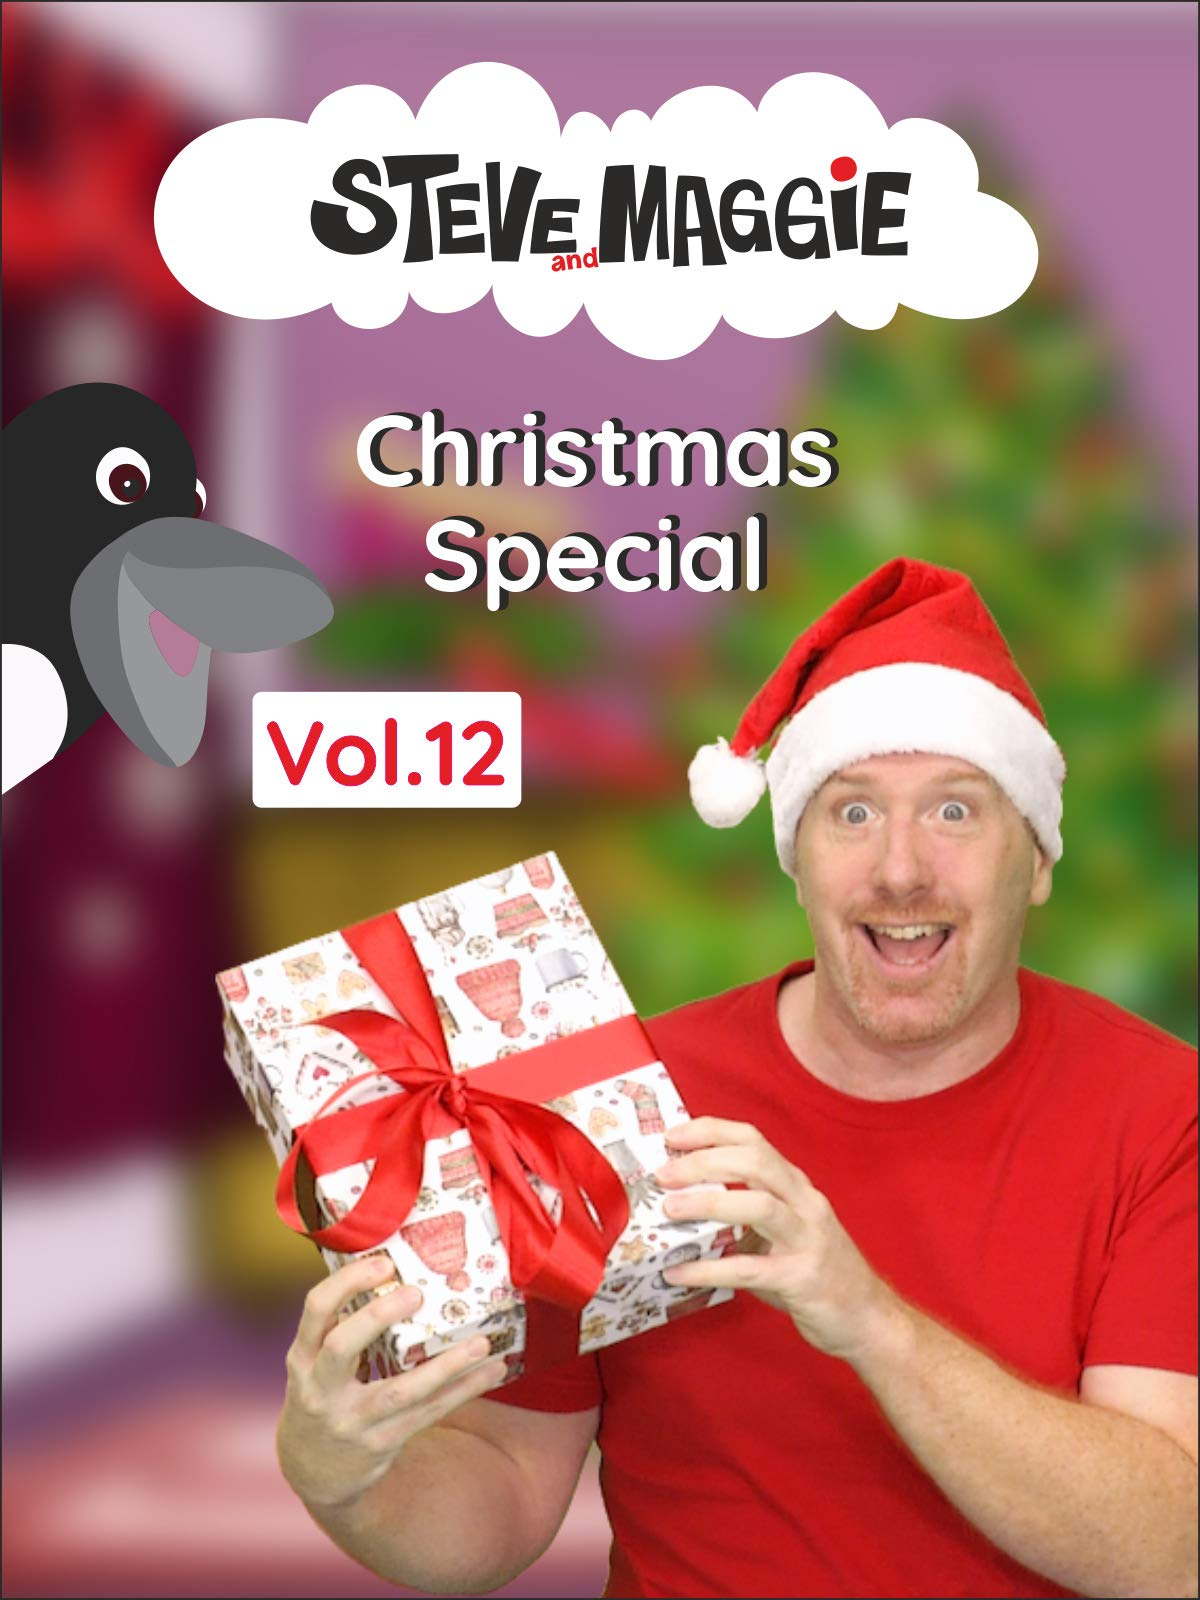 Steve and Maggie - Christmas Special (Vol. 12)